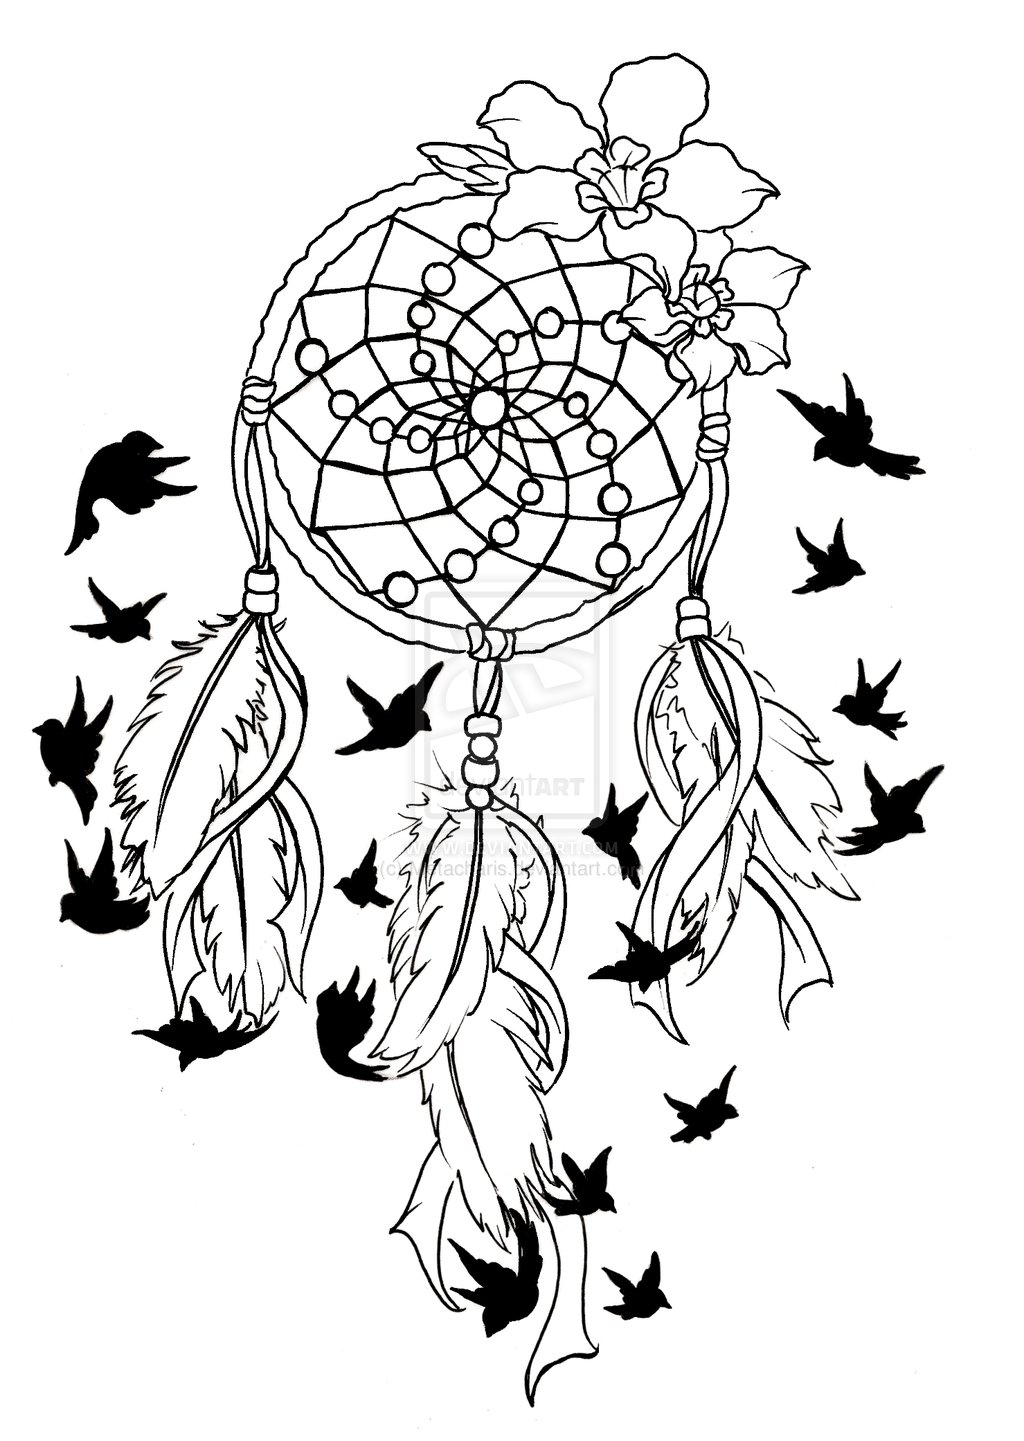 Dreamcatcher Colouring Pages